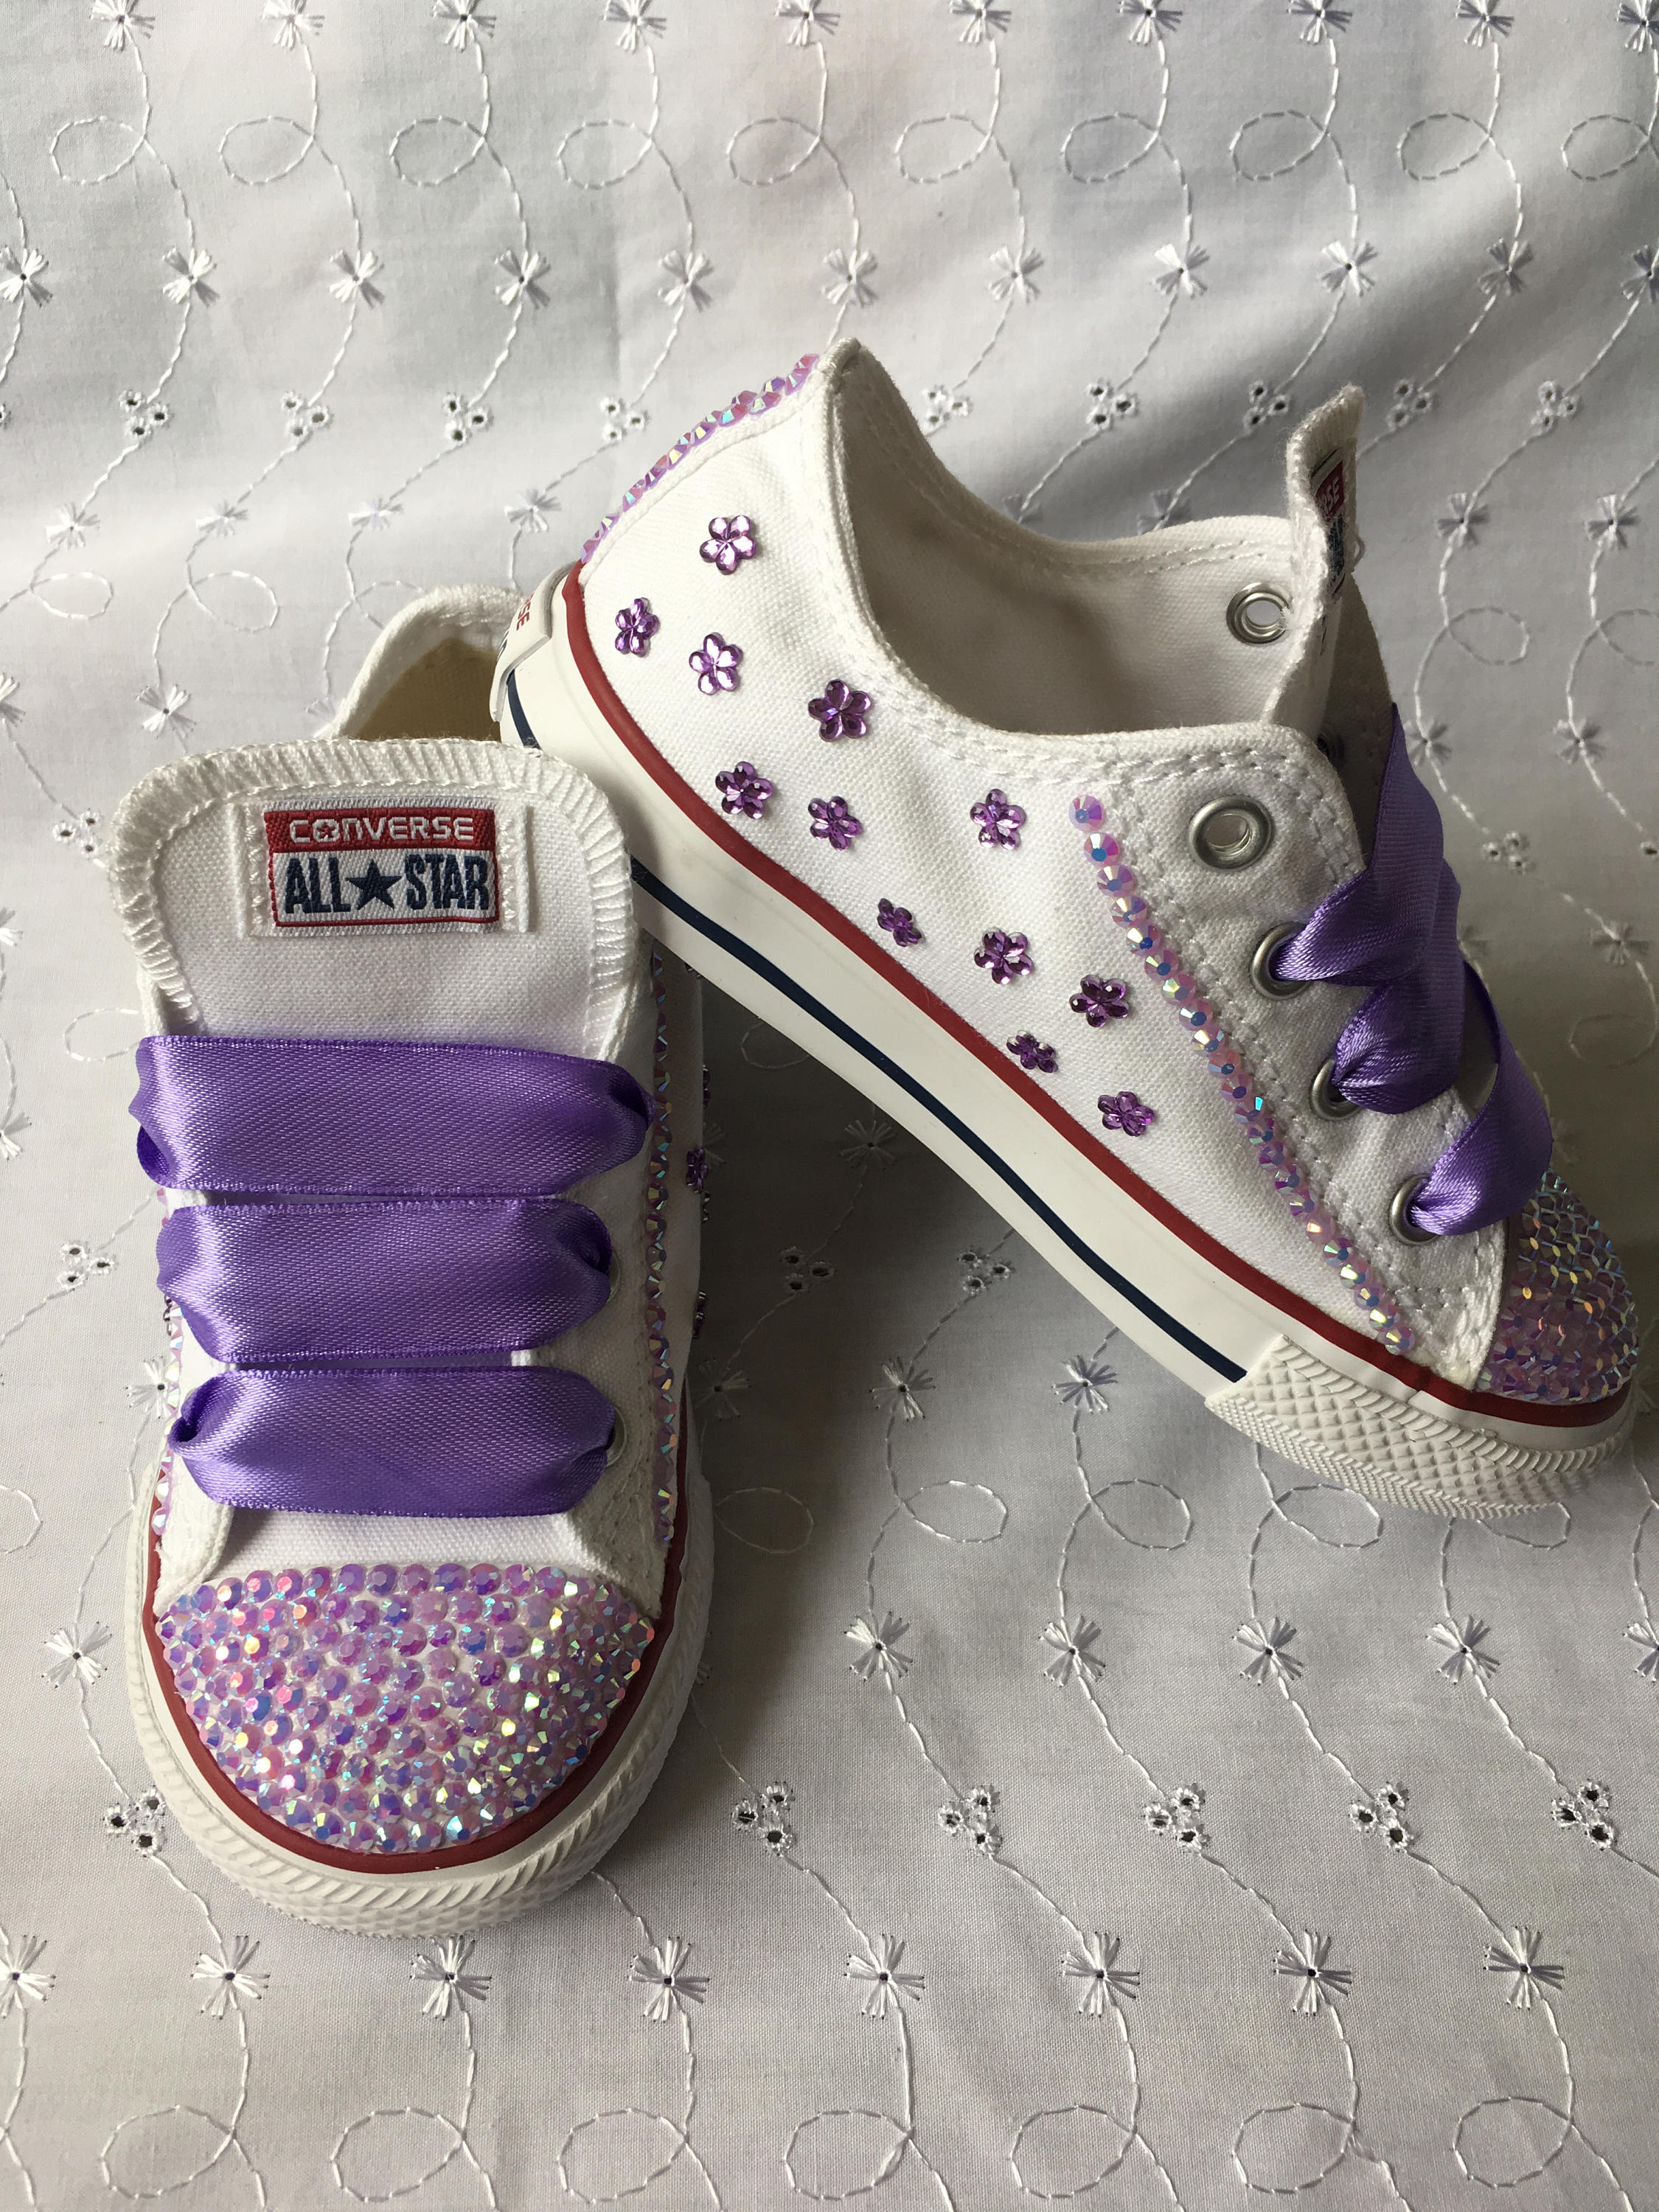 Bling  Customised Purple Flowers JuniorKids CONVERSE ALL STAR Trainers 11 12 13 1 2